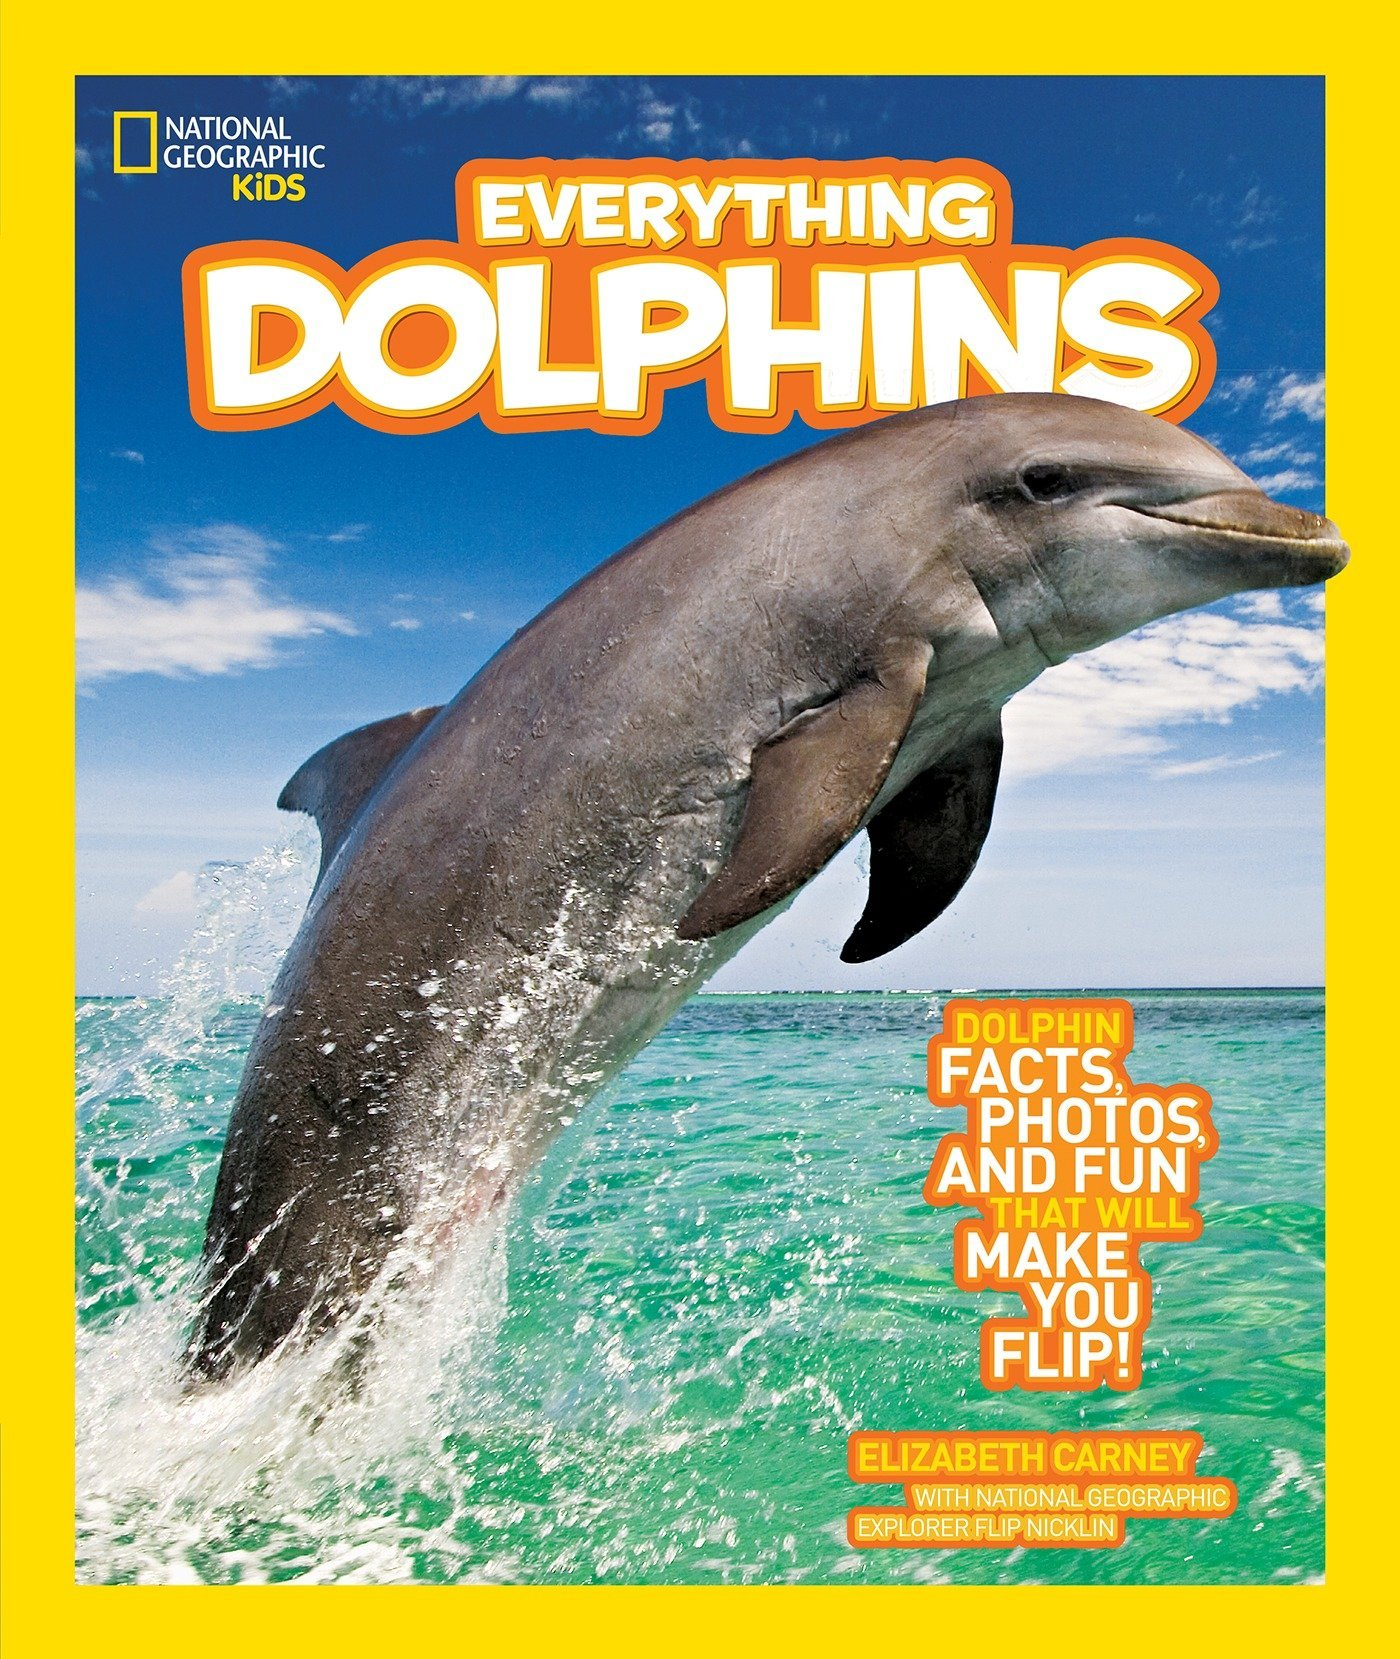 National Geographic Kids Everything Dolphins: Dolphin Facts, Photos, and Fun that Will Make You Flip ebook